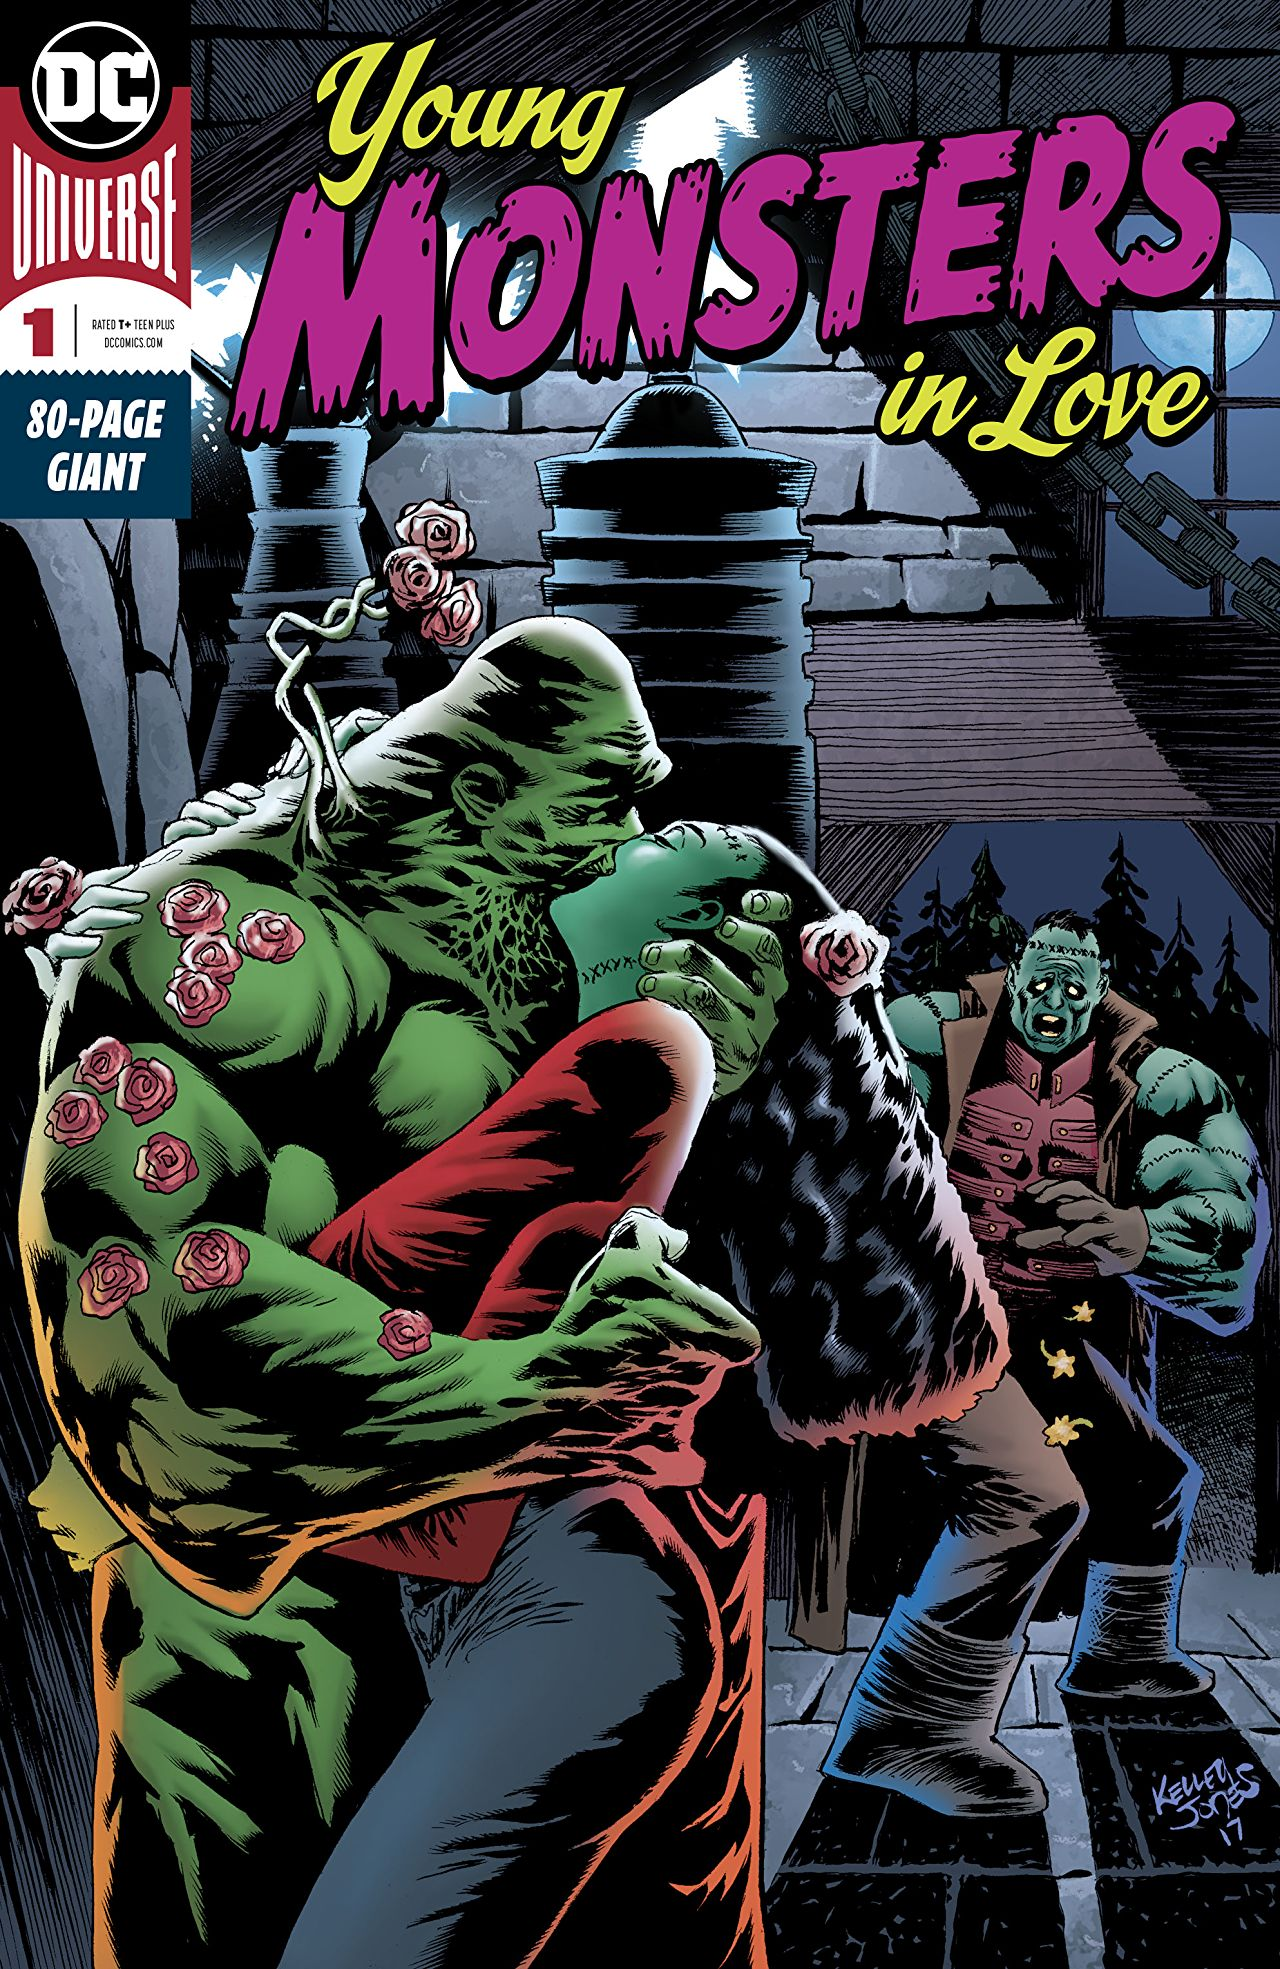 Young Monsters in Love #1kite44